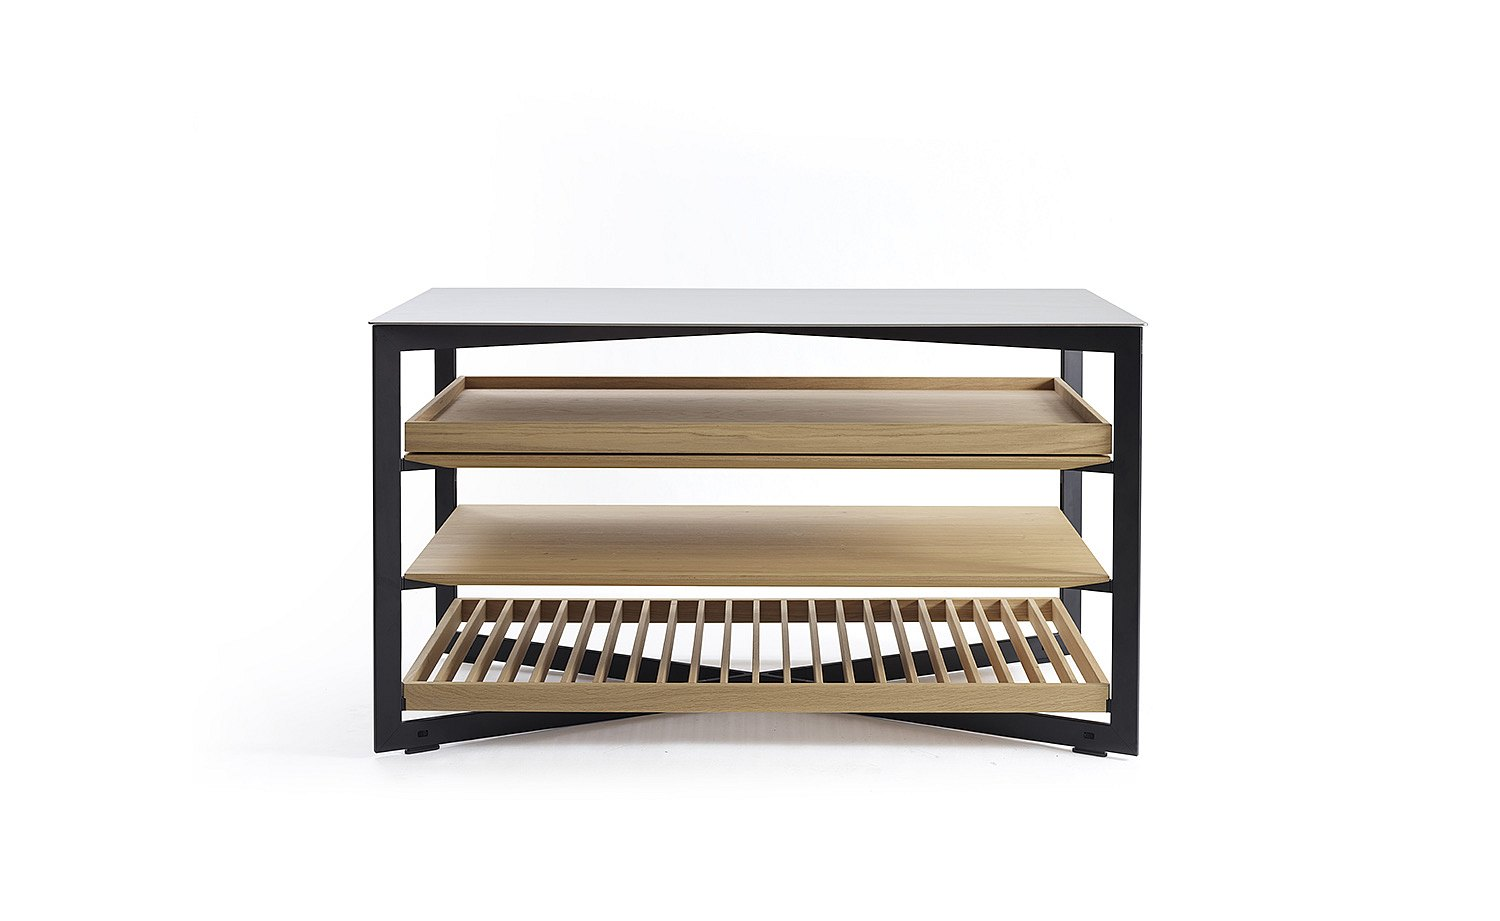 b Solitaire glass, 140 cm length with wood grid, wood shelf and wood pull-out tray: frontal view